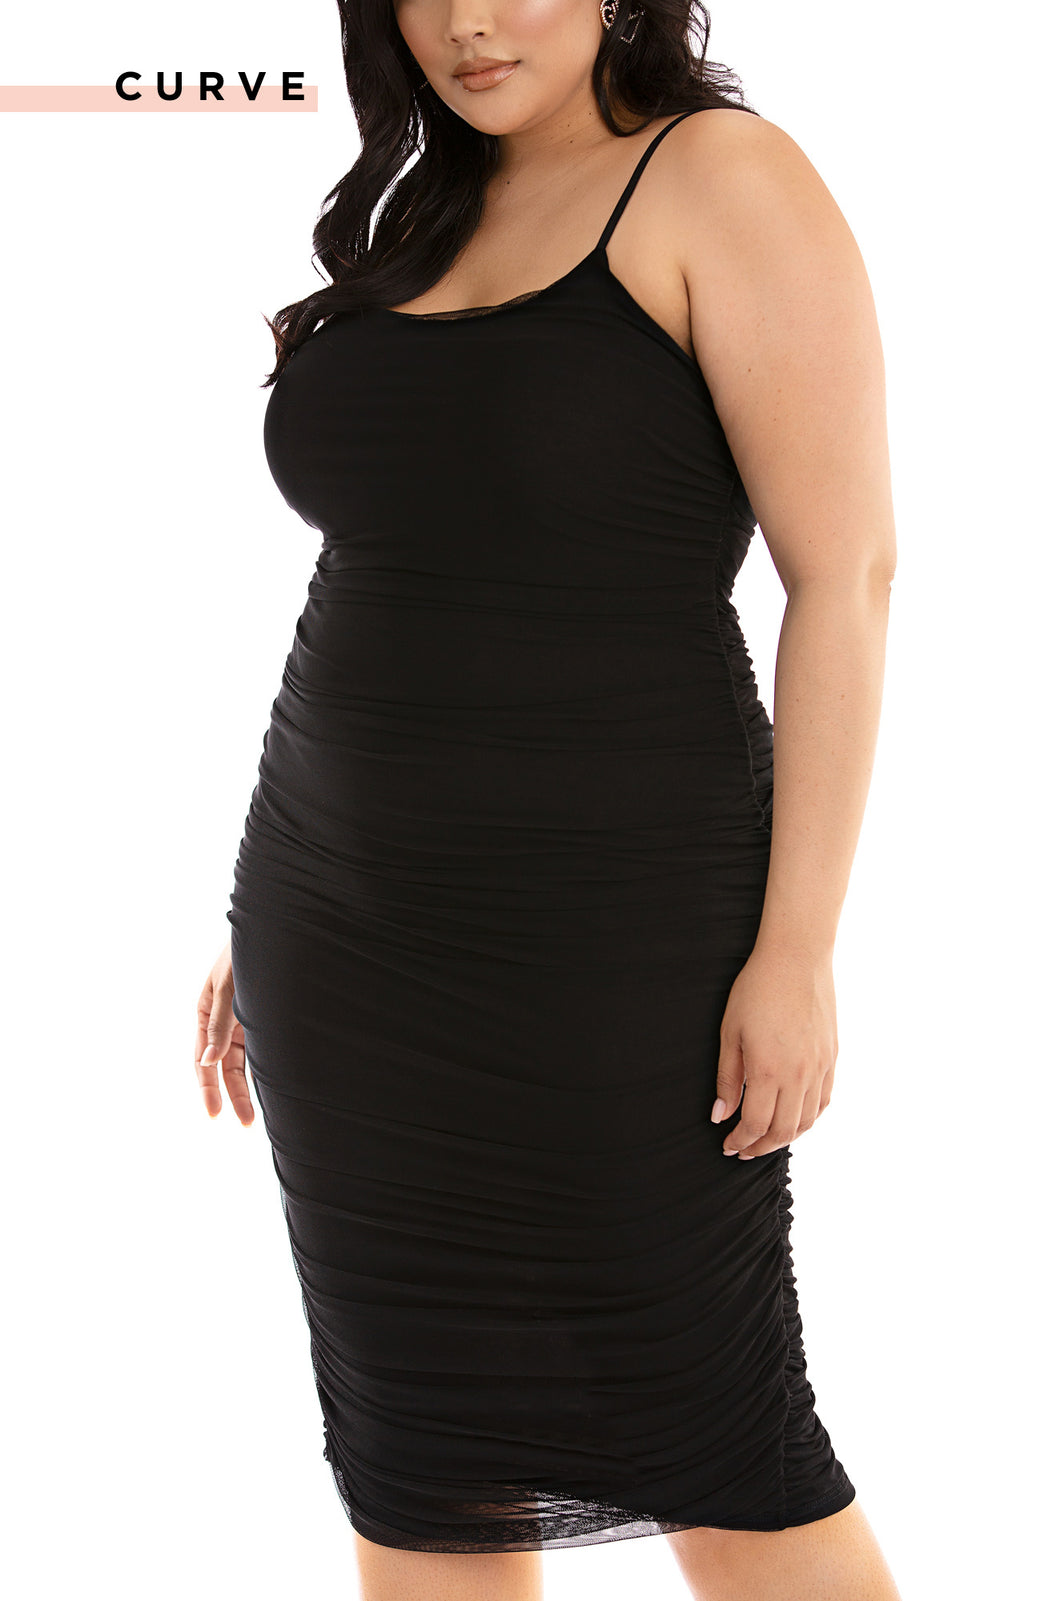 Model Behavior Dress - Black